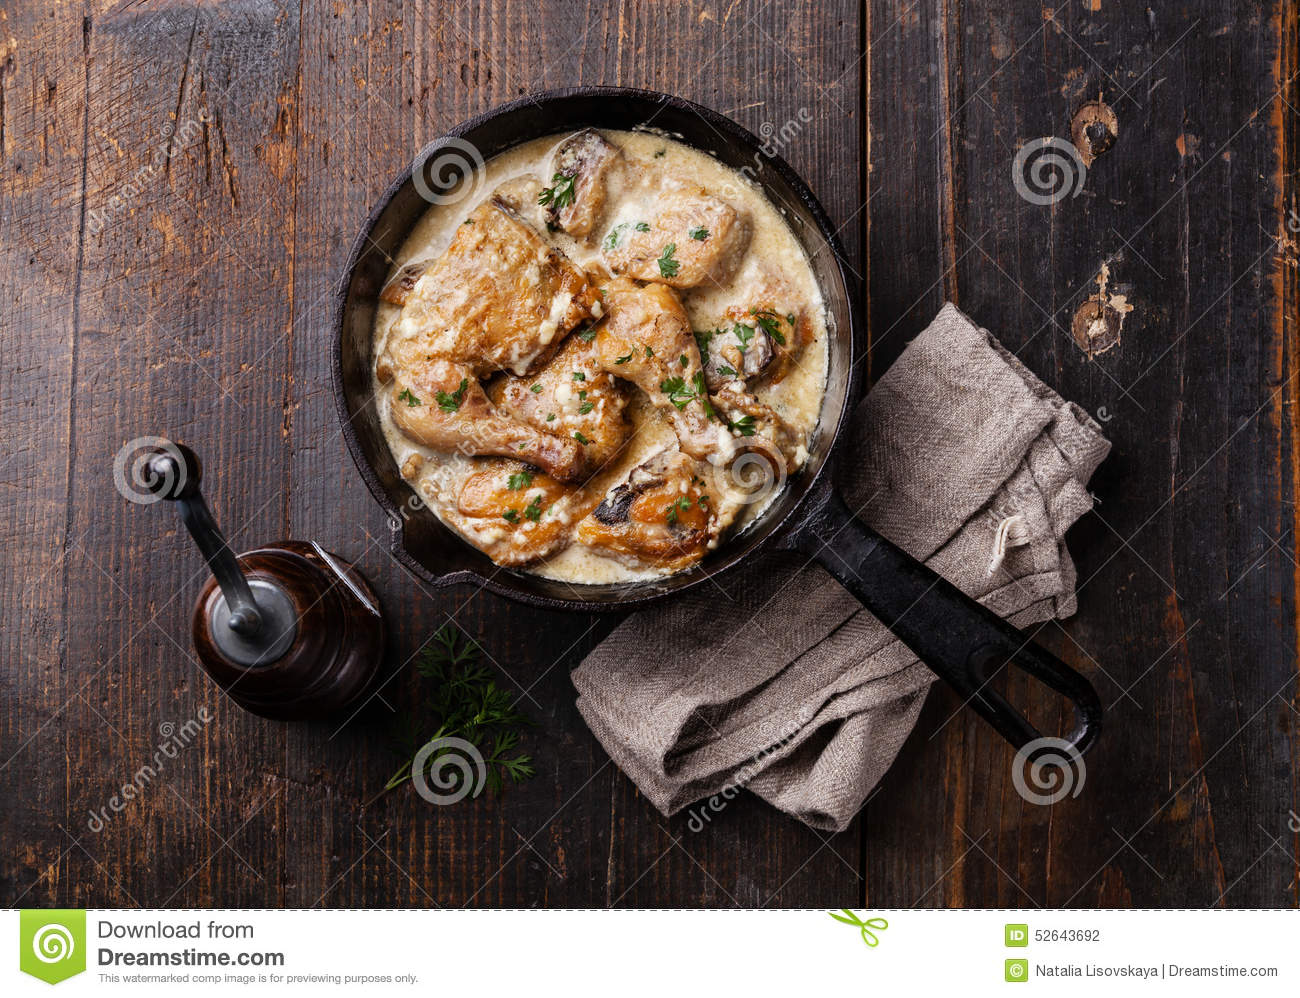 Roasted chicken with creamy garlic sauce